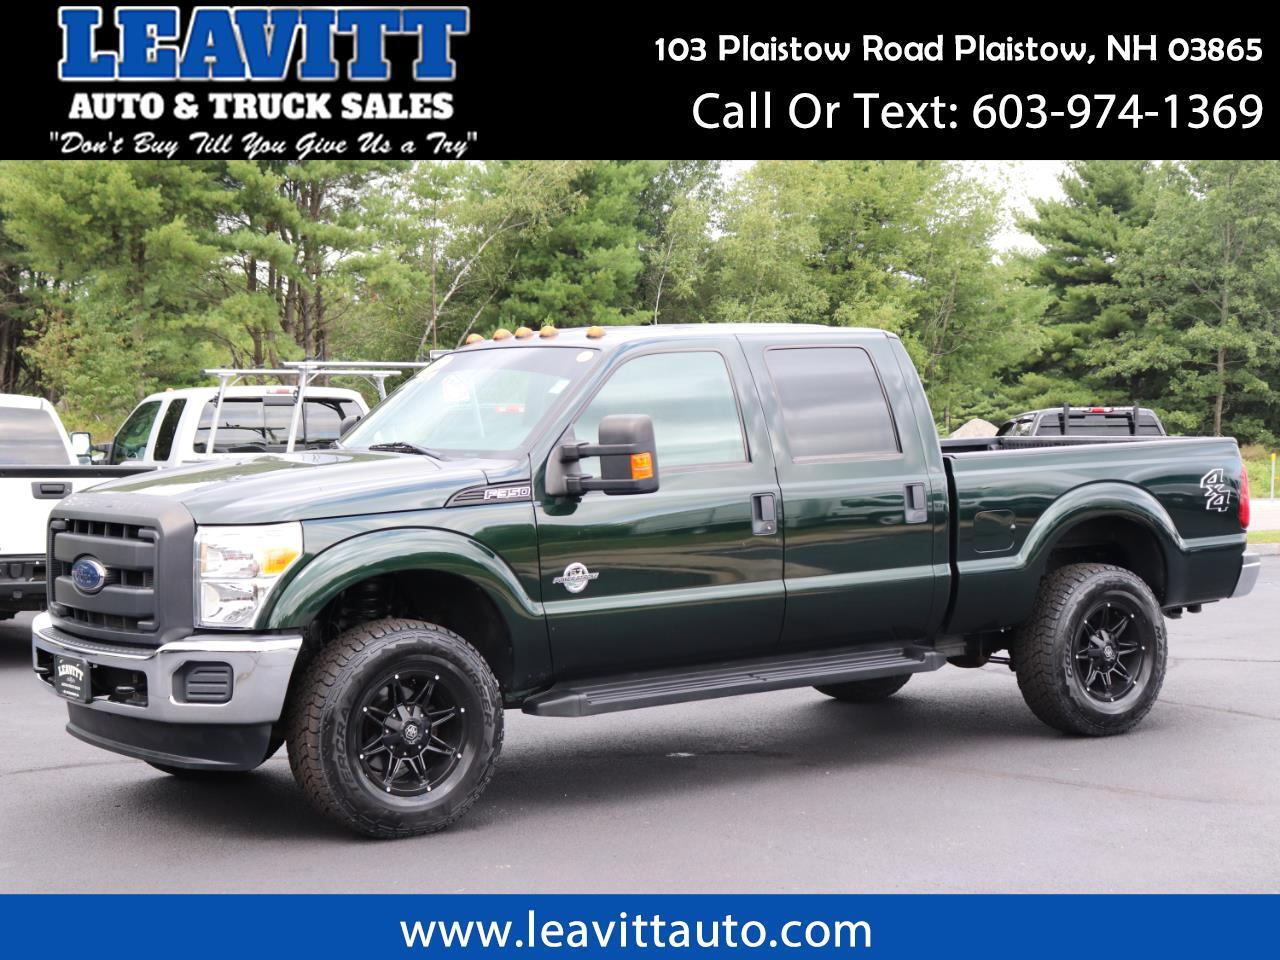 2012 Ford F-350 SD CREW CAB 6.7L POWERSTROKE 75K MILES